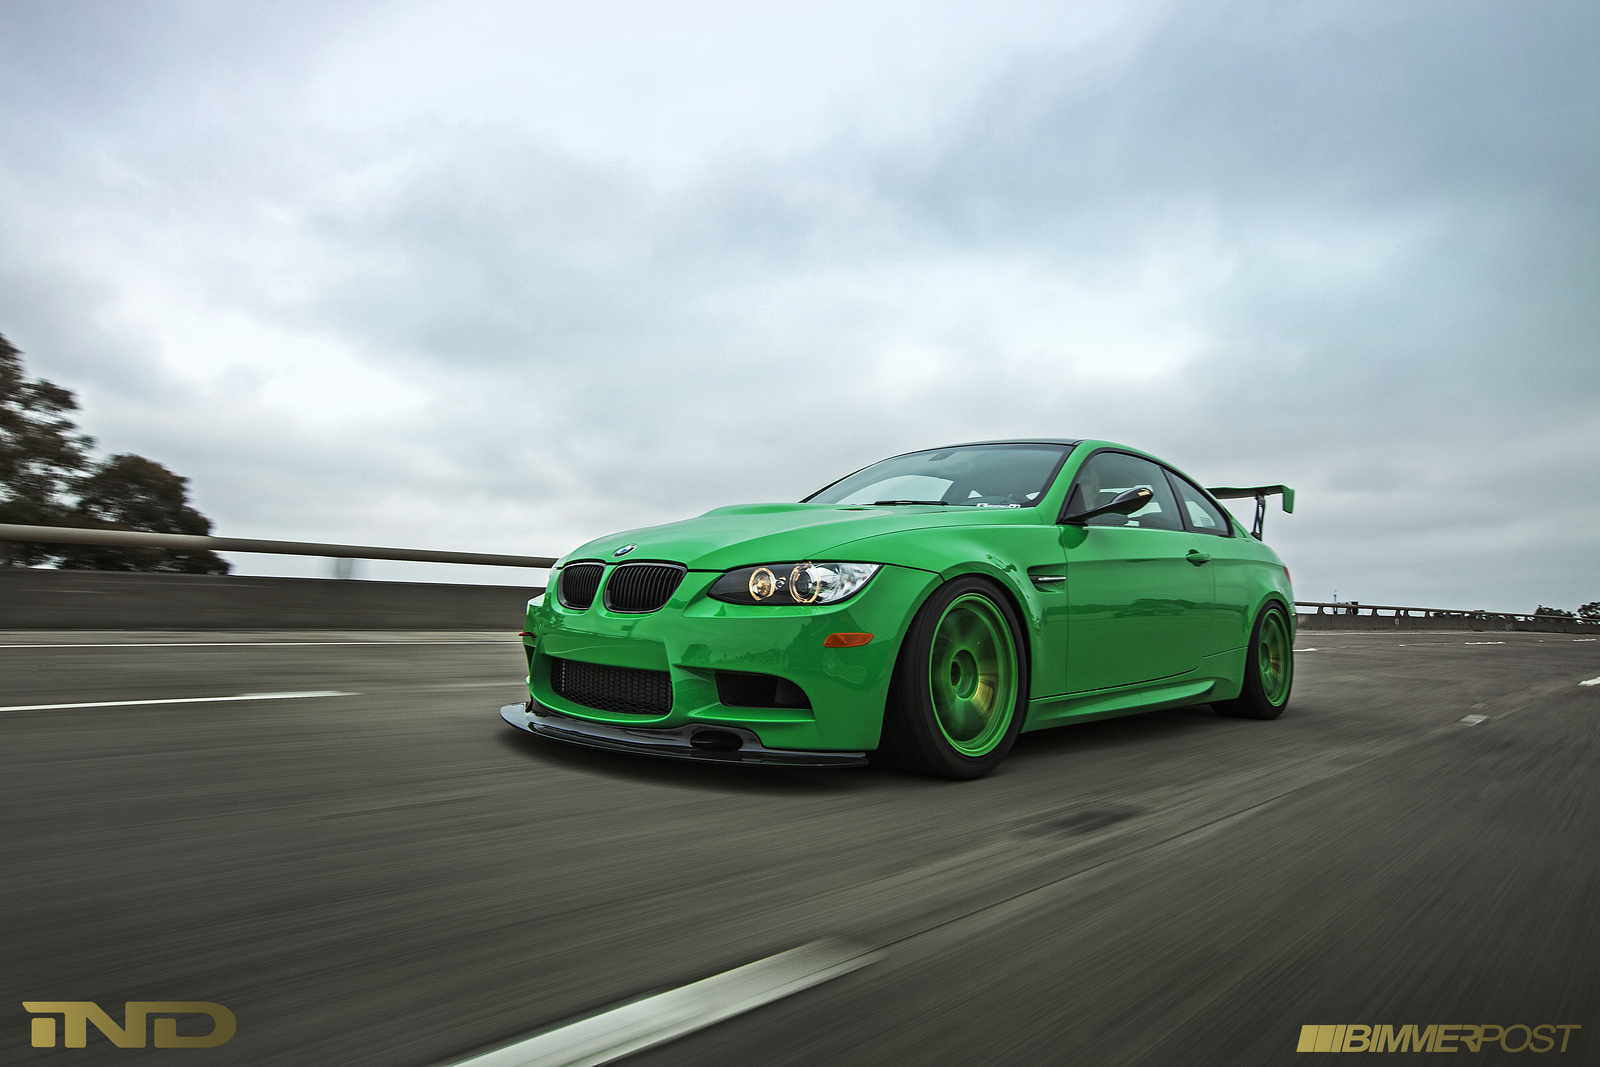 Ind S Signal Green Bmw E92 M3 Tells A Story Autoevolution